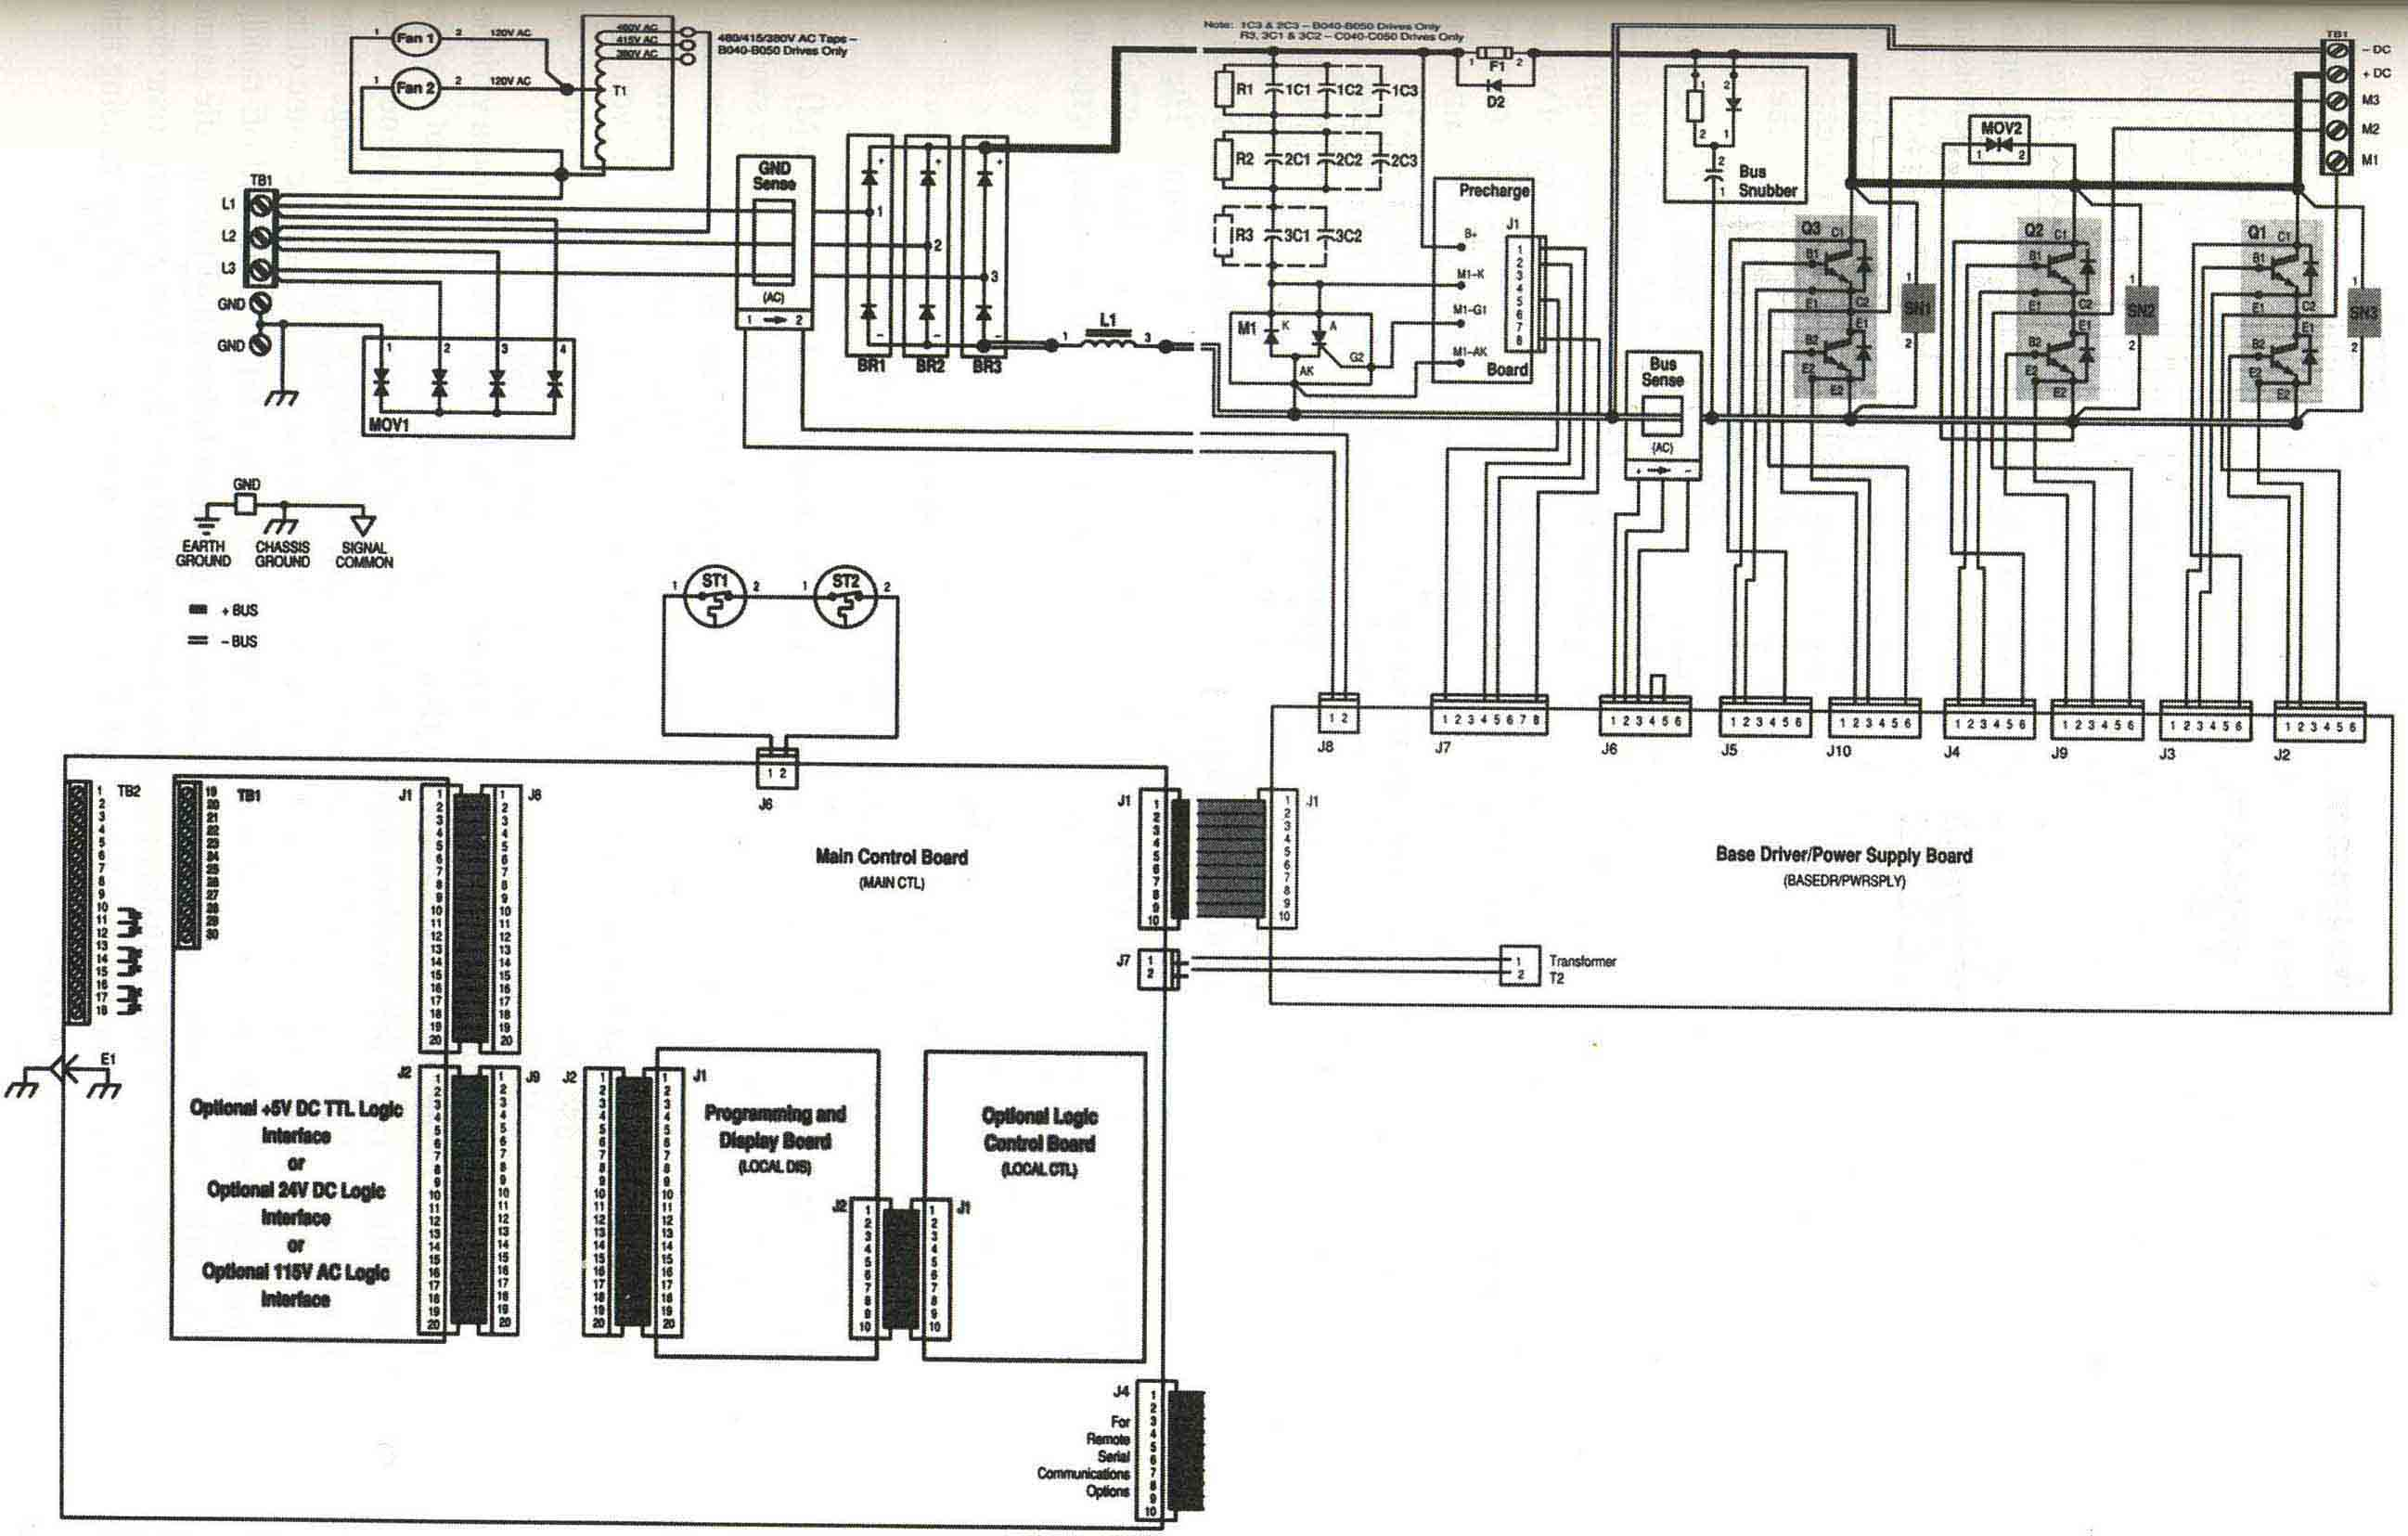 Allen Bradley 1336 schematic solid state circuits for variable frequency drives vfd control wiring diagram at soozxer.org